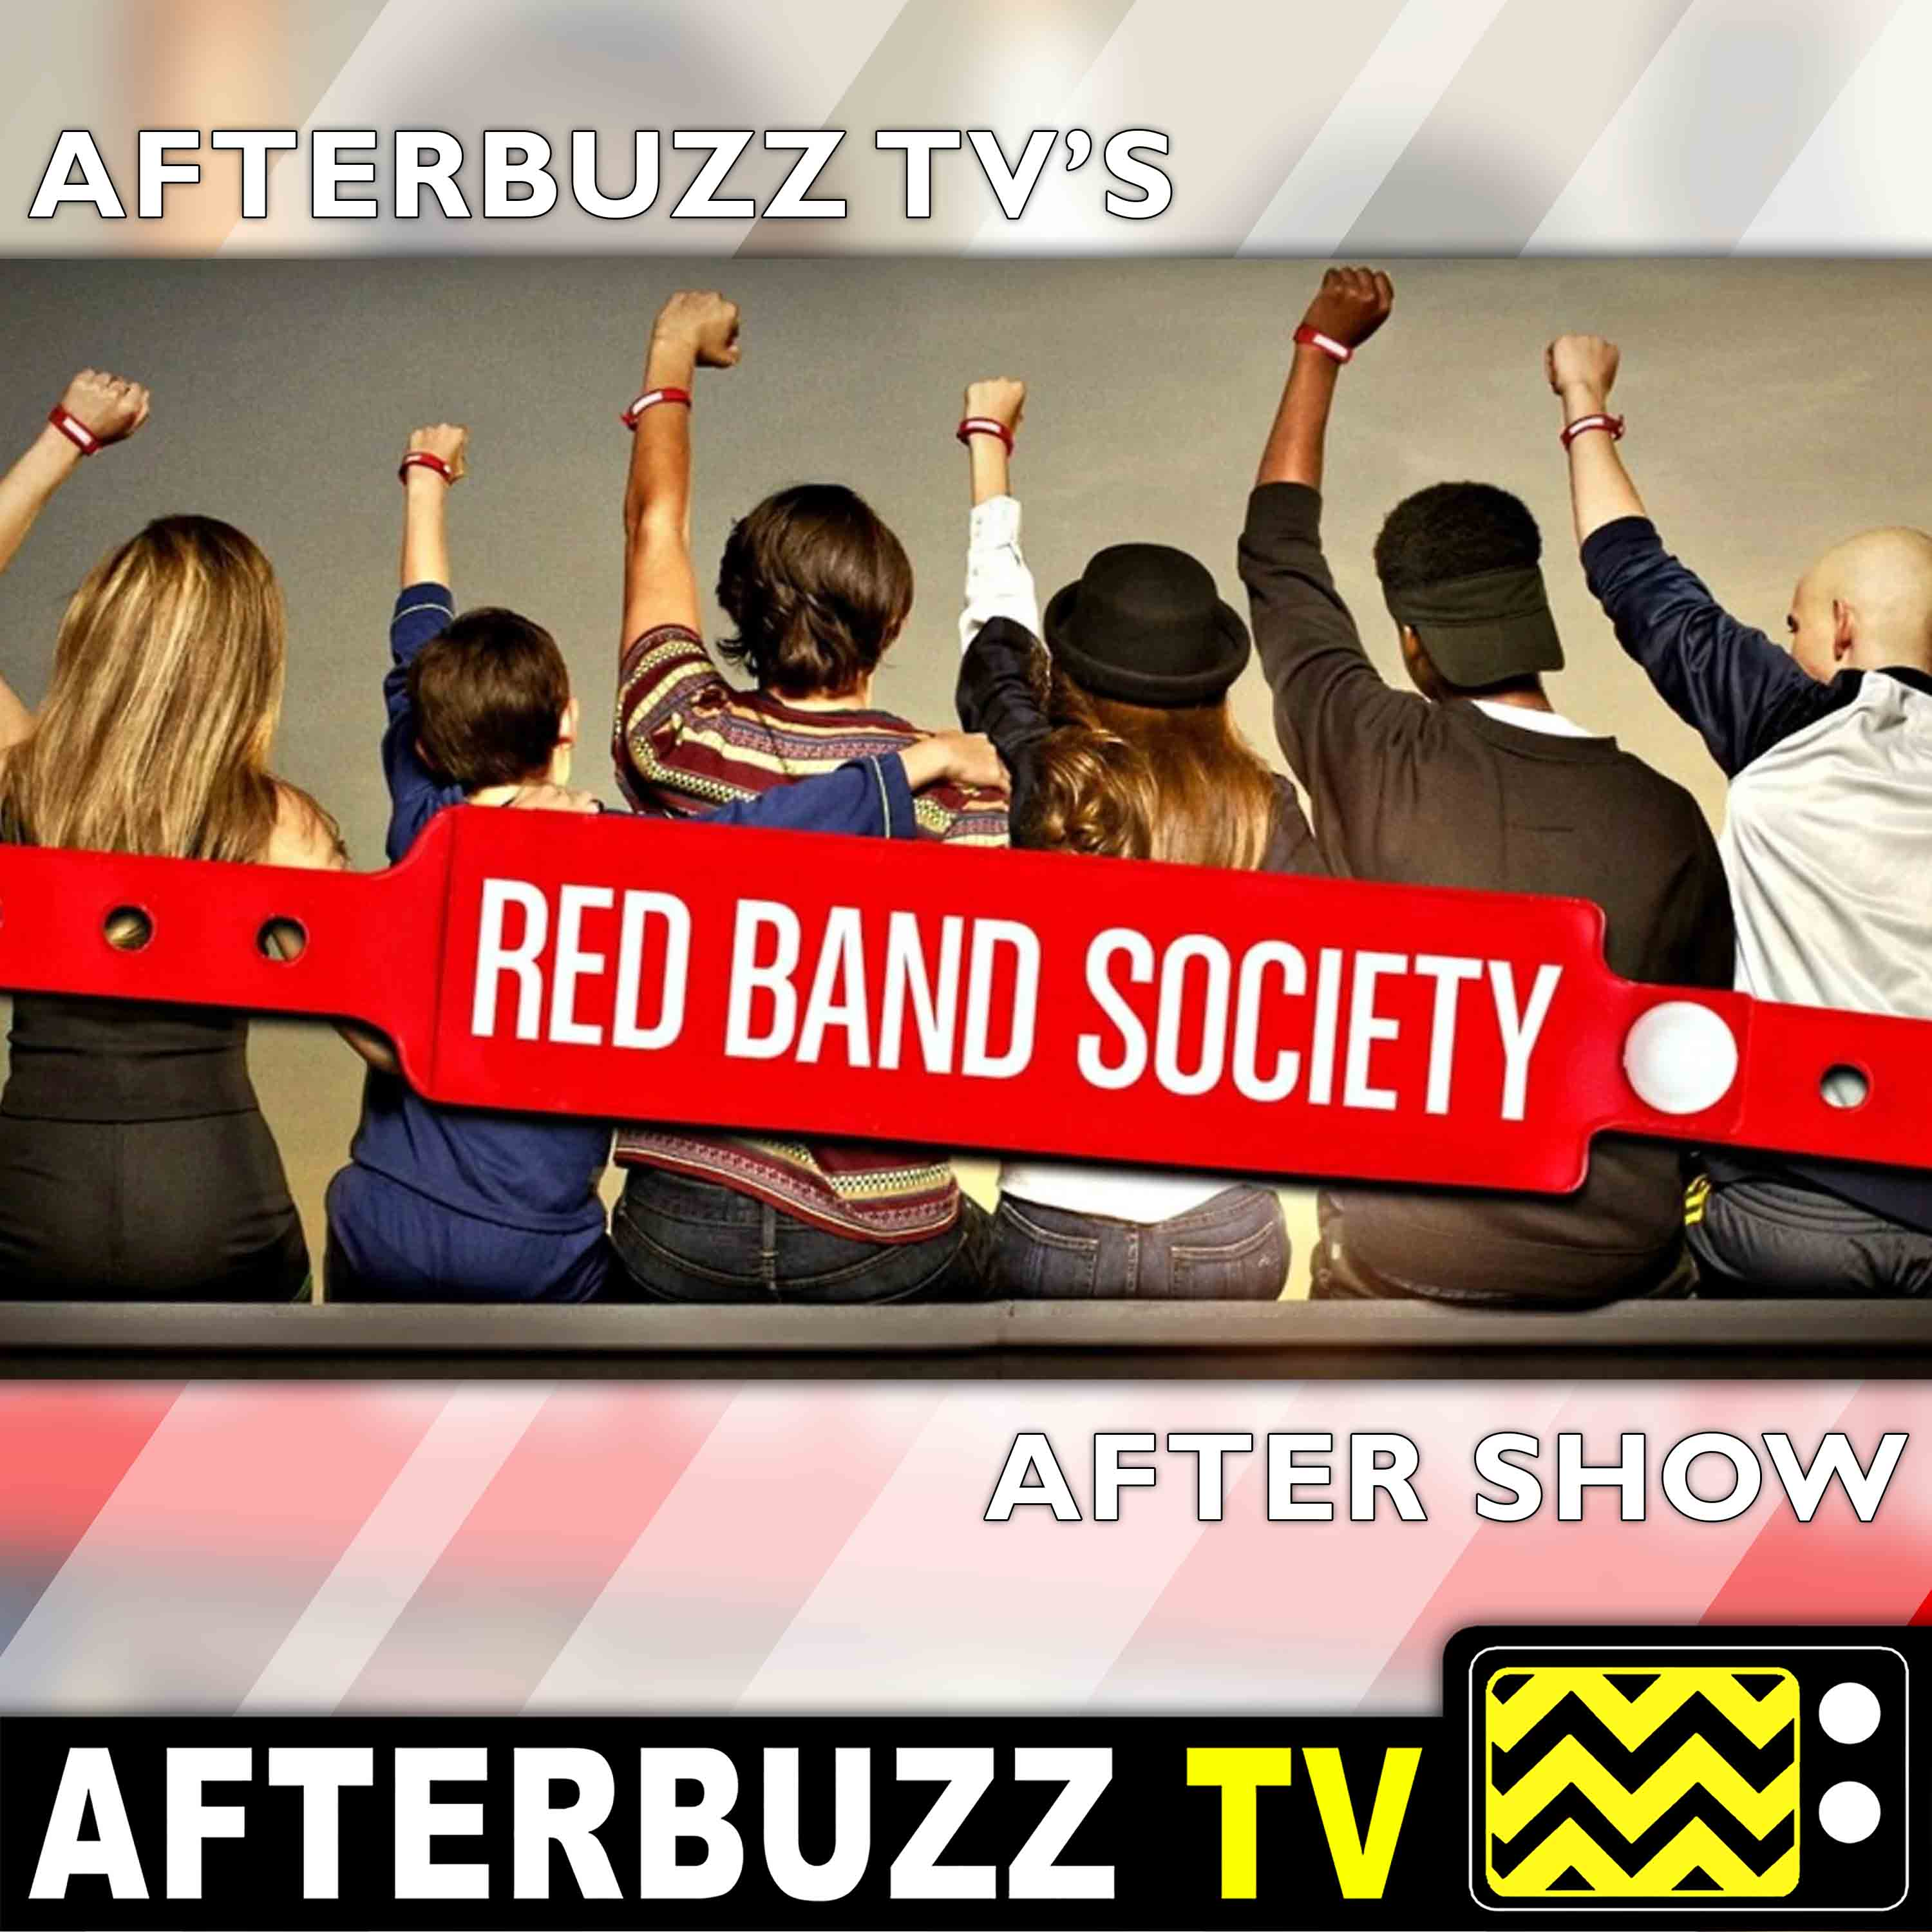 Red Band Society Reviews and After Show